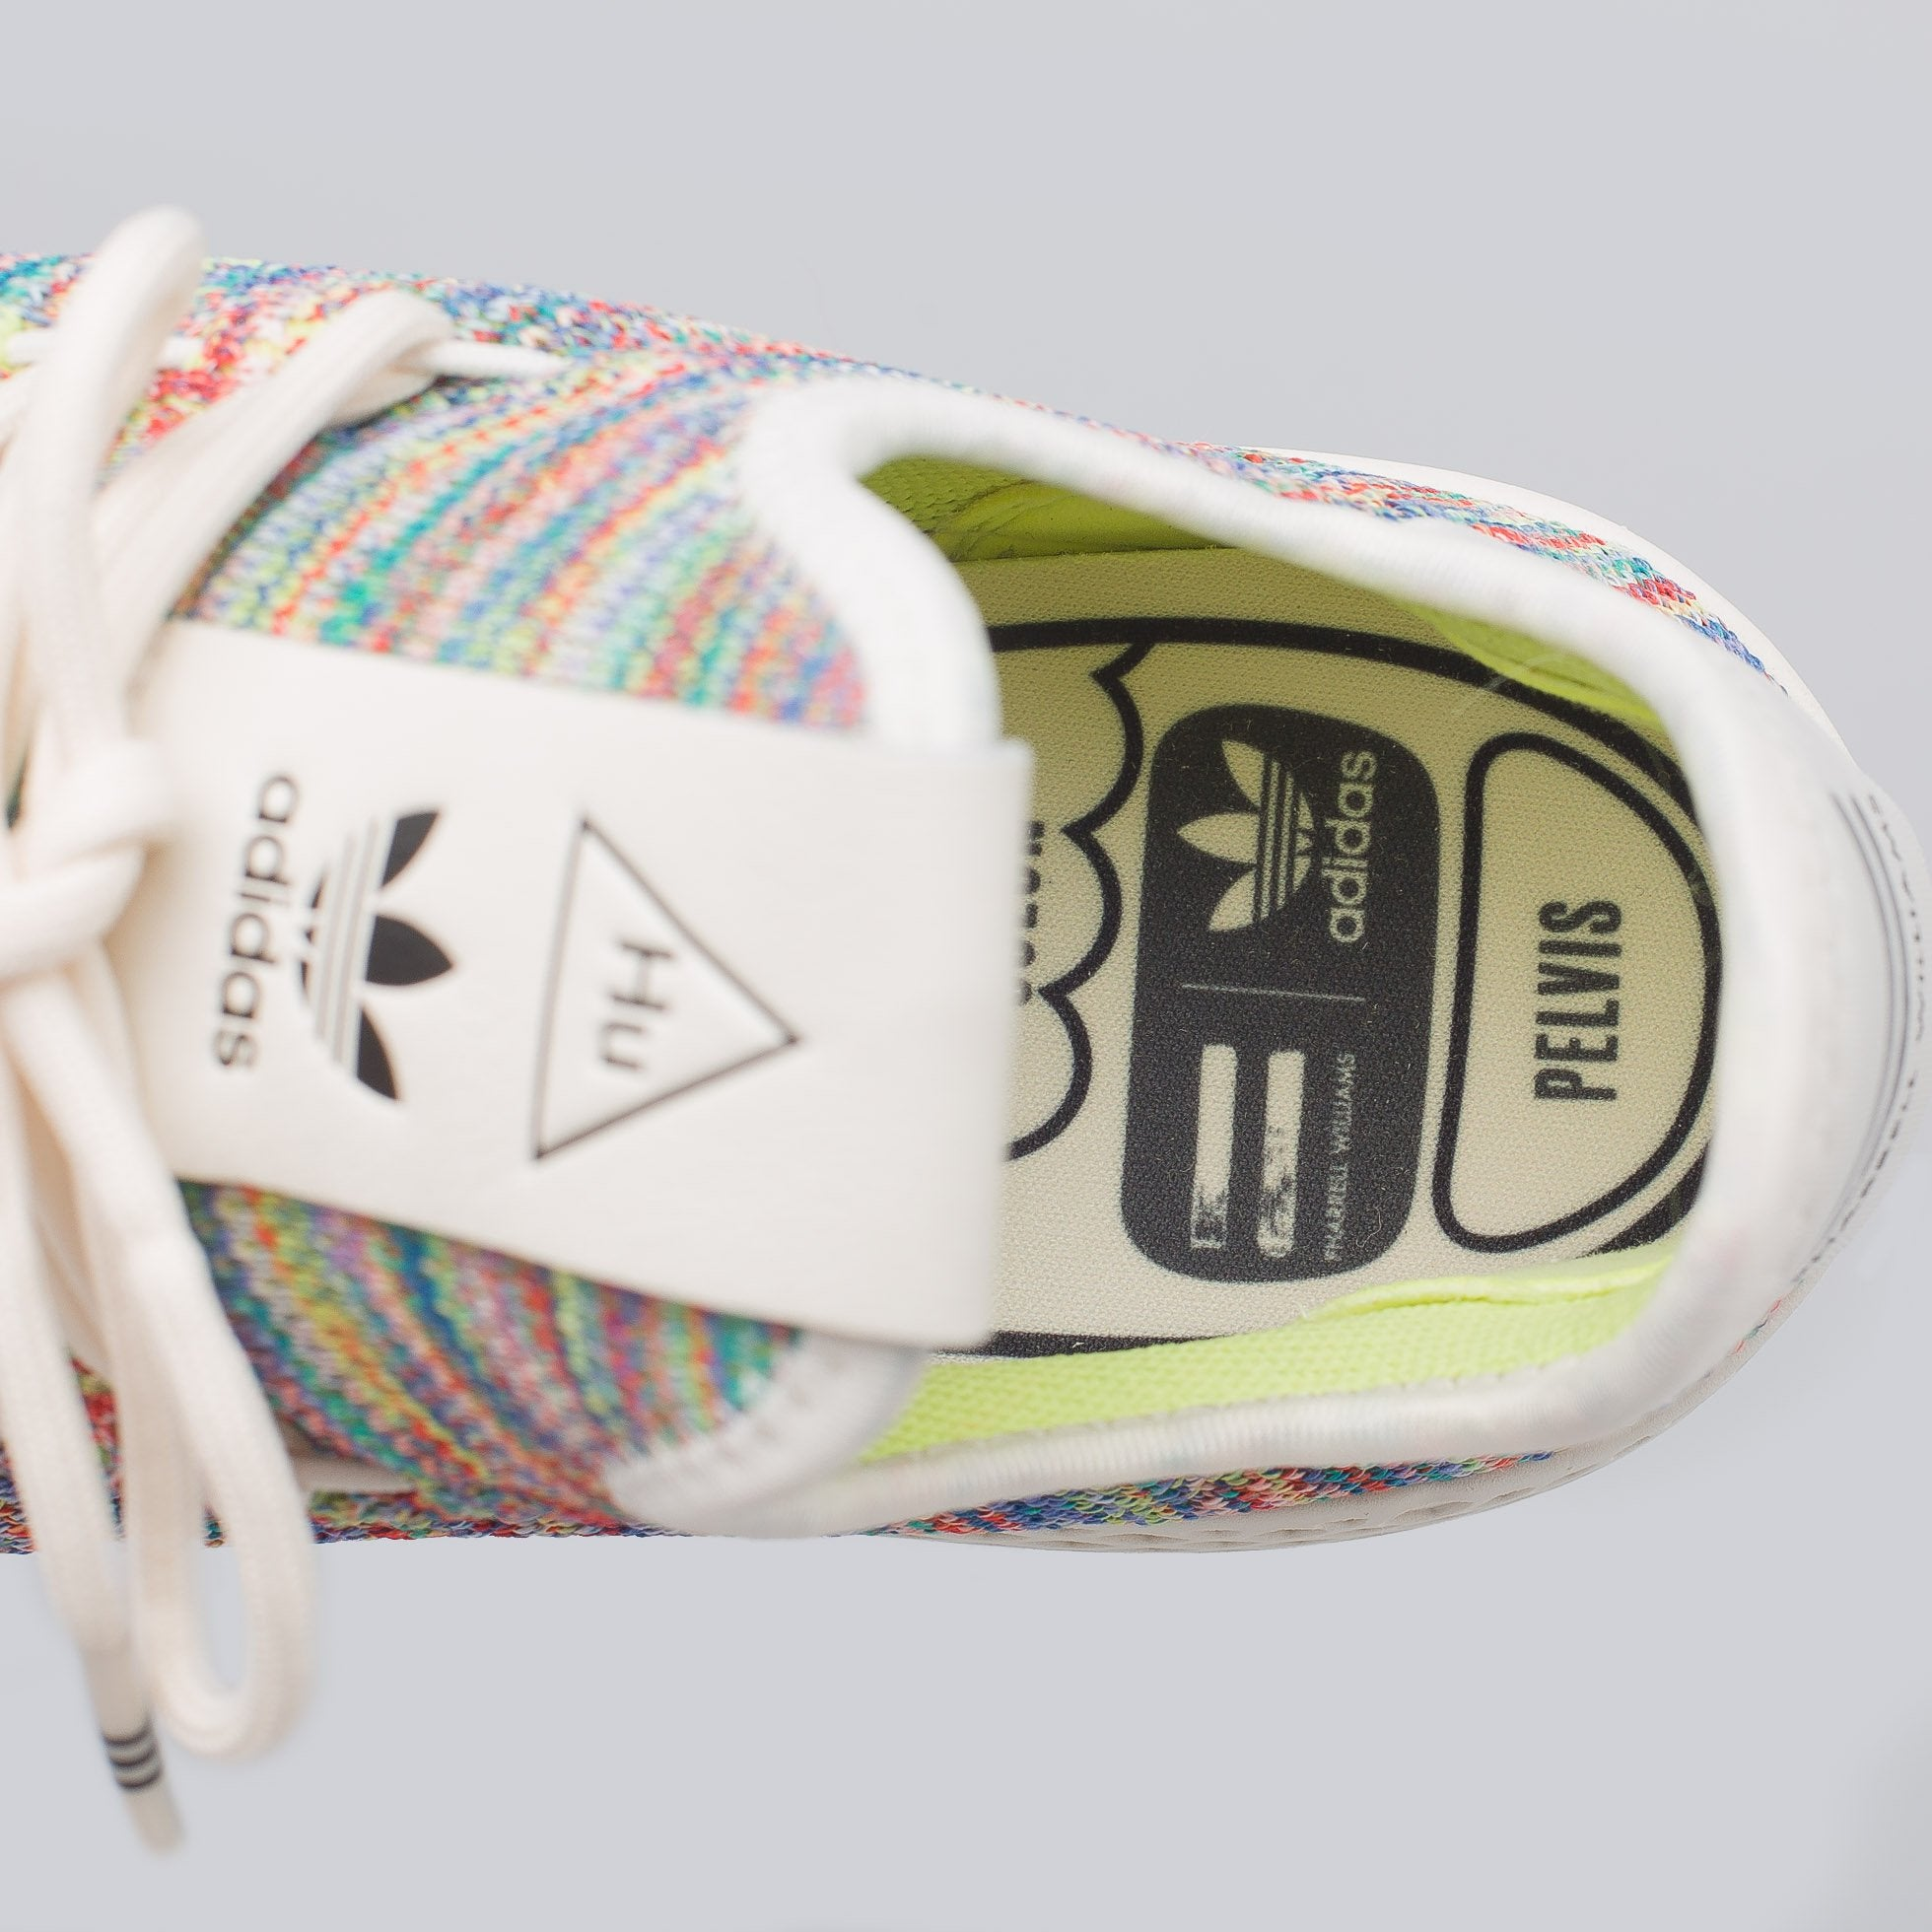 fa8d135c8 x Pharrell Williams Tennis Hu Primeknit in Multi – PZOZO